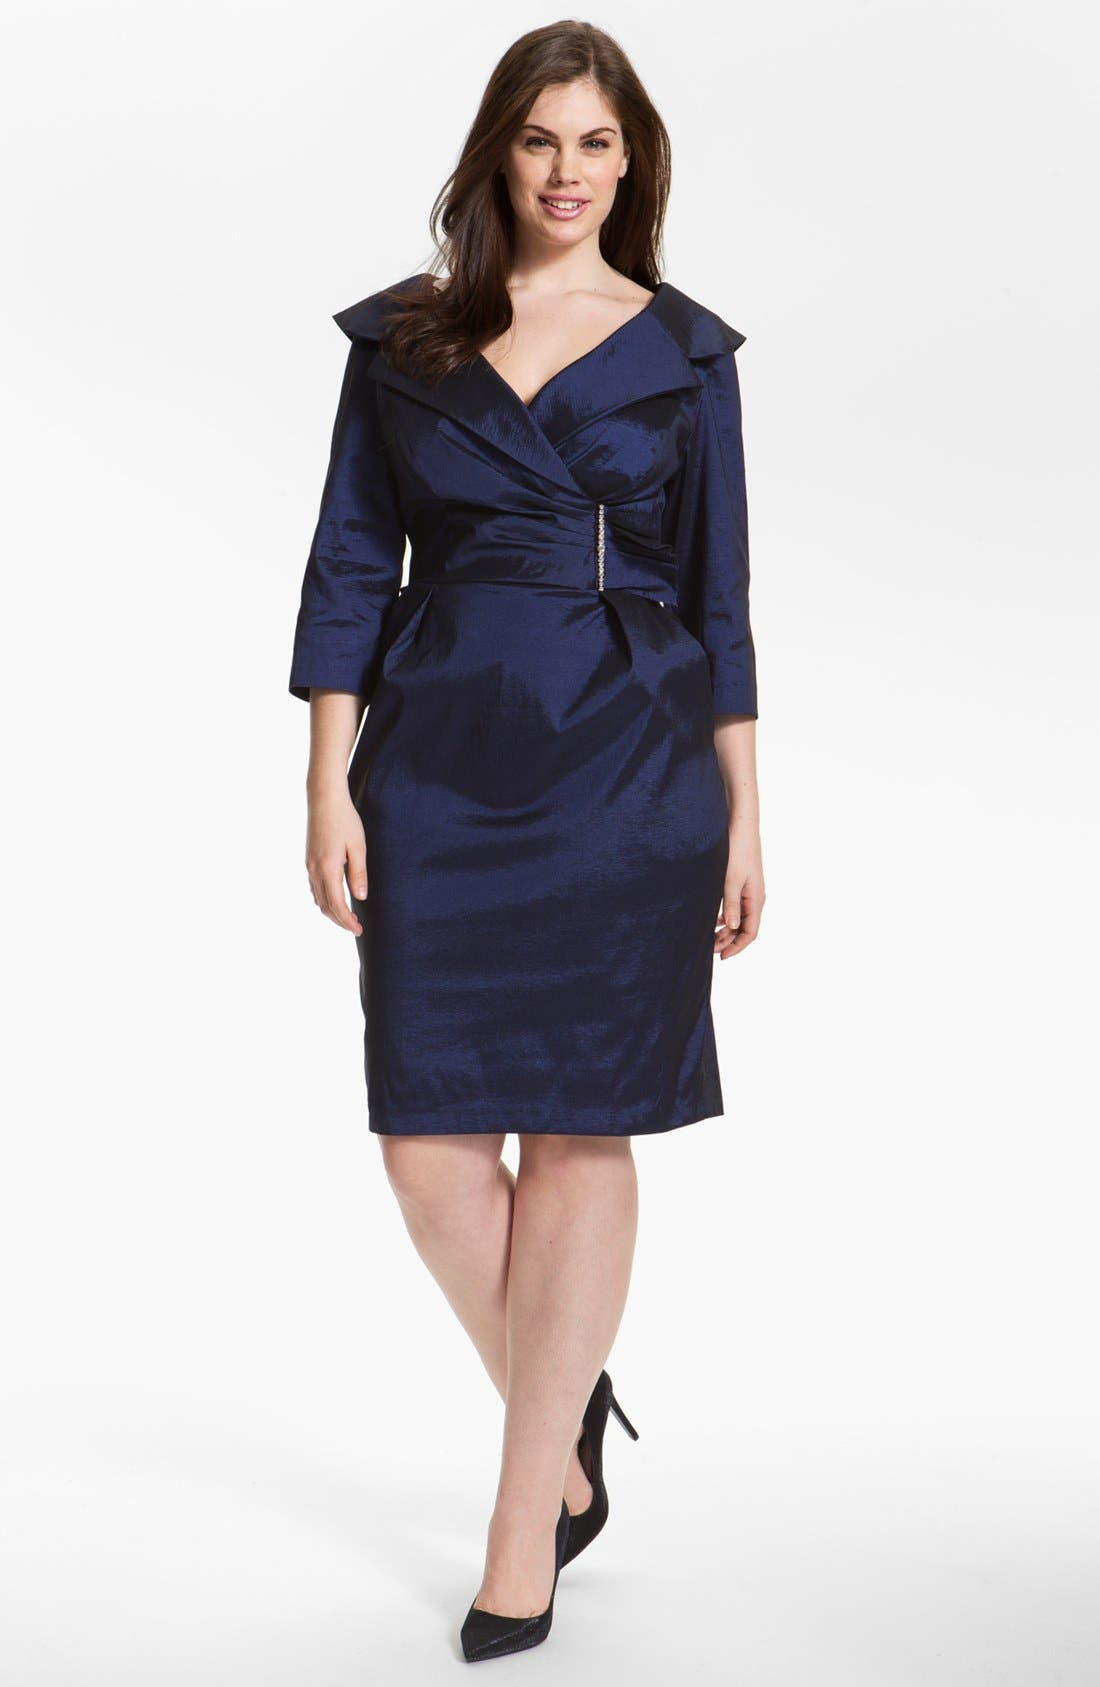 Alternate Image 1 Selected - Alex Evenings Embellished Sheath Dress (Plus Size)